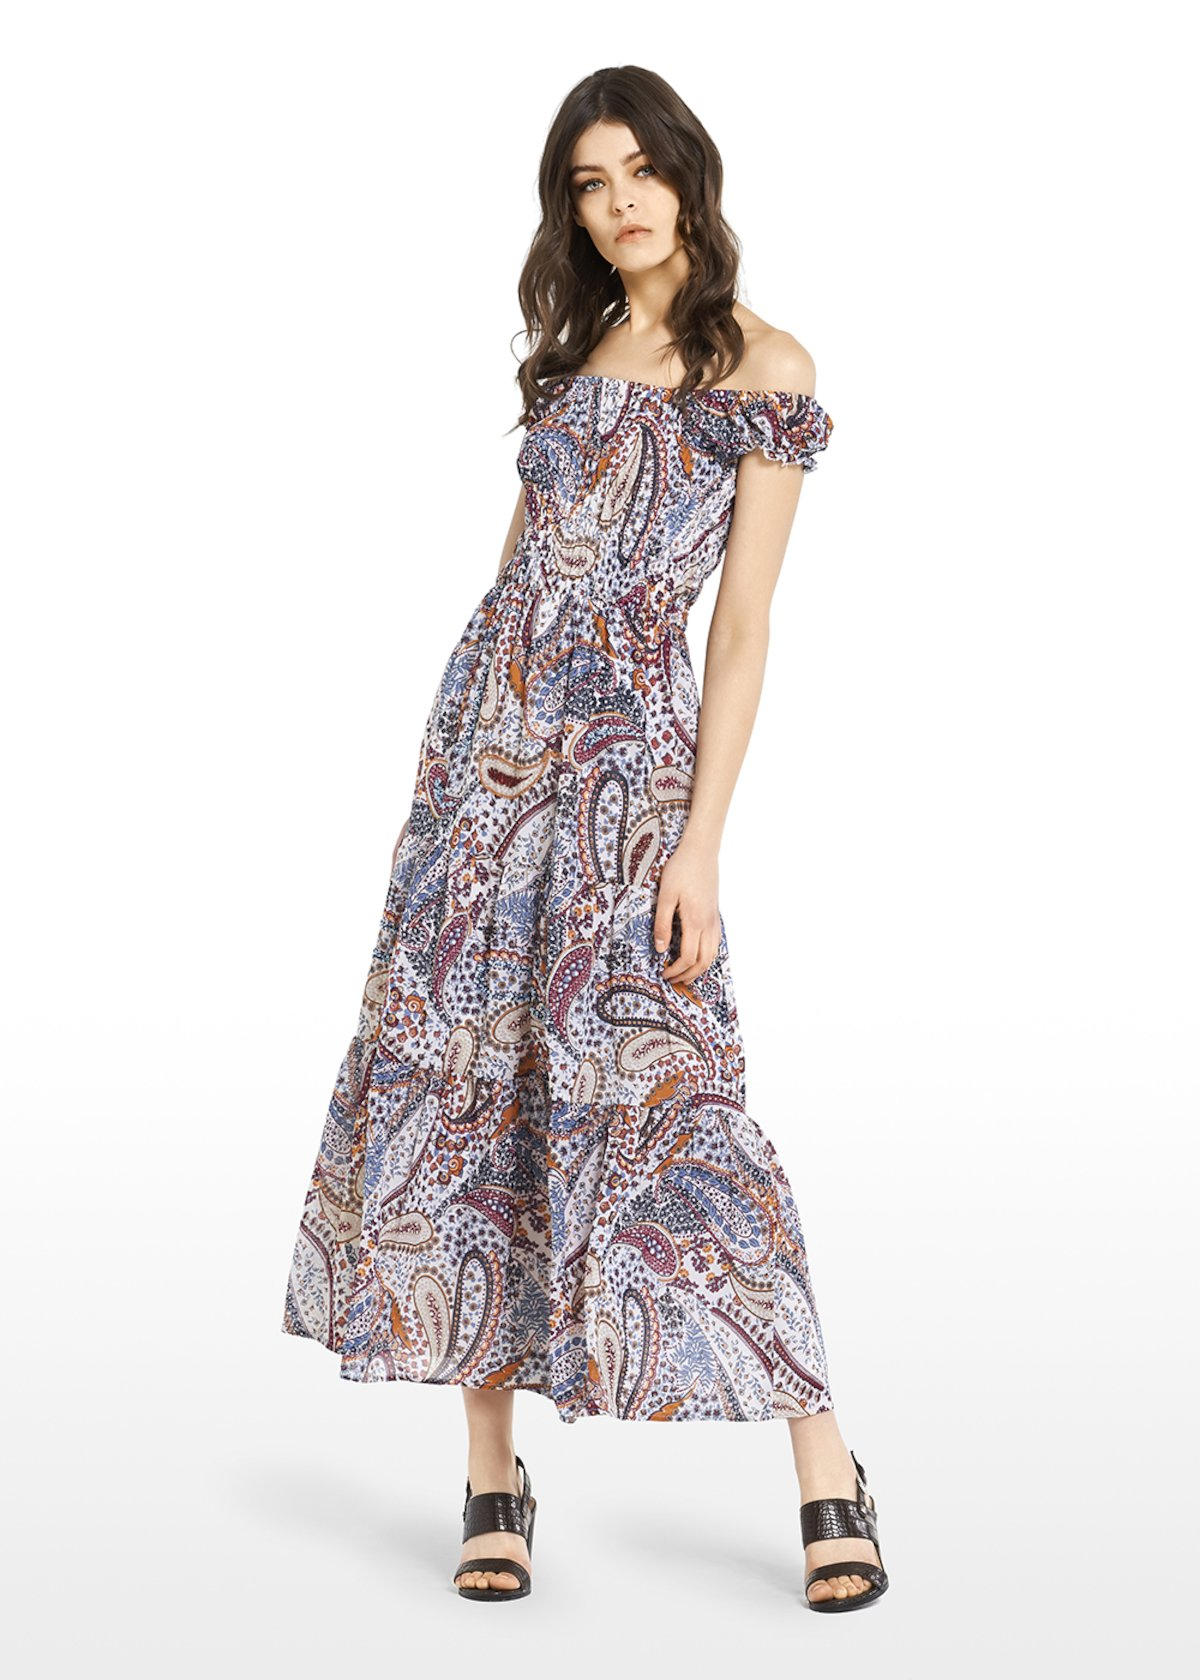 Alyson georgette dress with smock stitching and embroidery - White\ Morello\ Fantasia - Woman - Category image